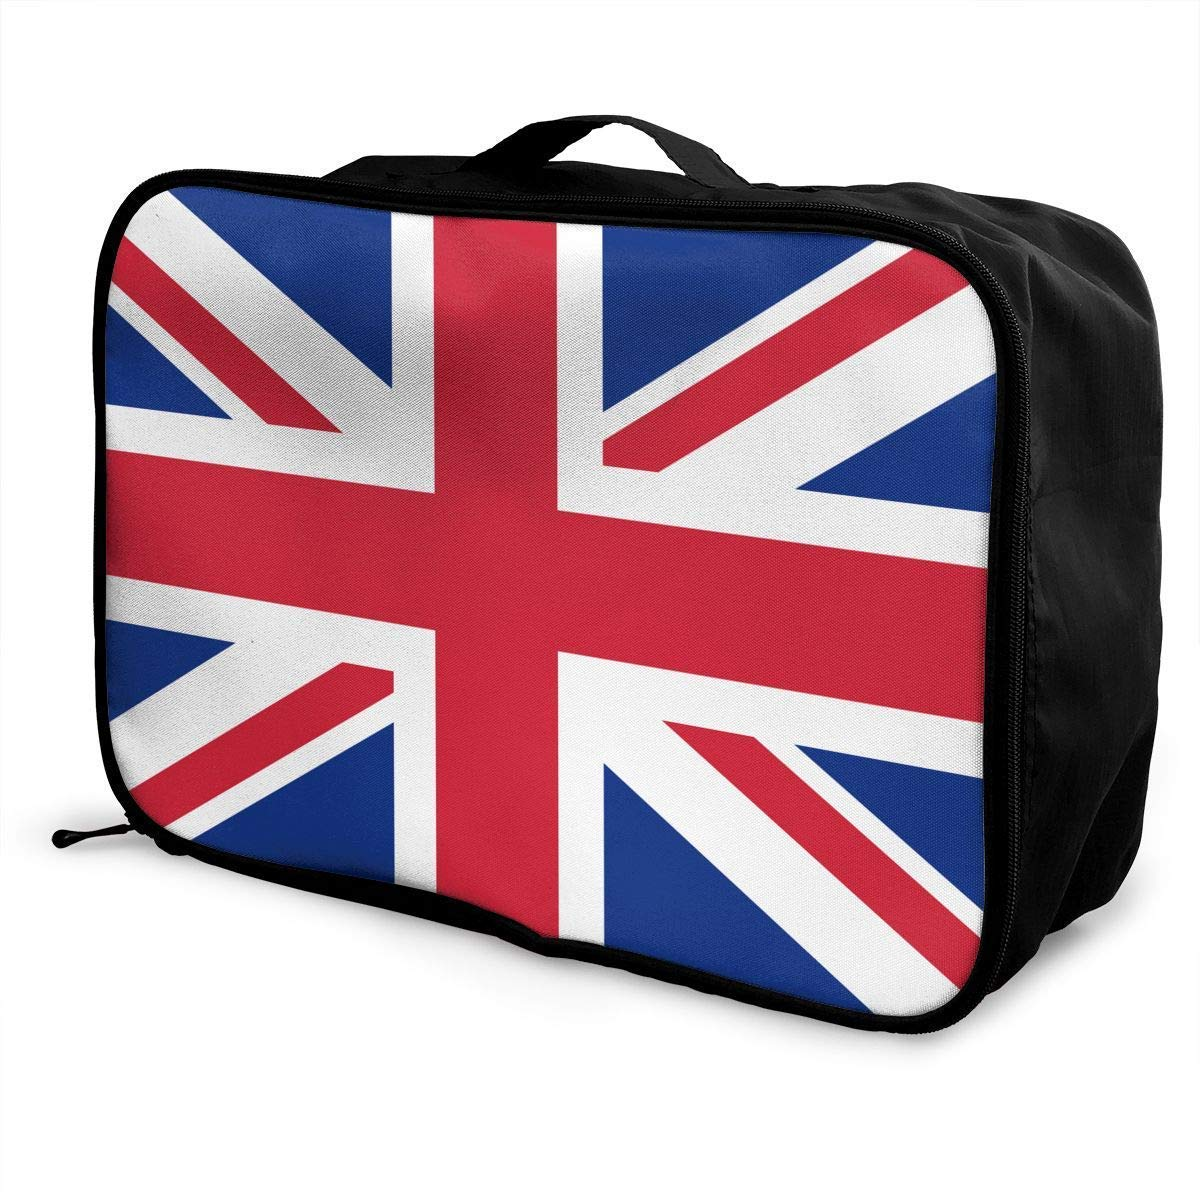 JTRVW Luggage Bags for Travel Portable Luggage Duffel Bag United Kingdom Flag Travel Bags Carry-on in Trolley Handle